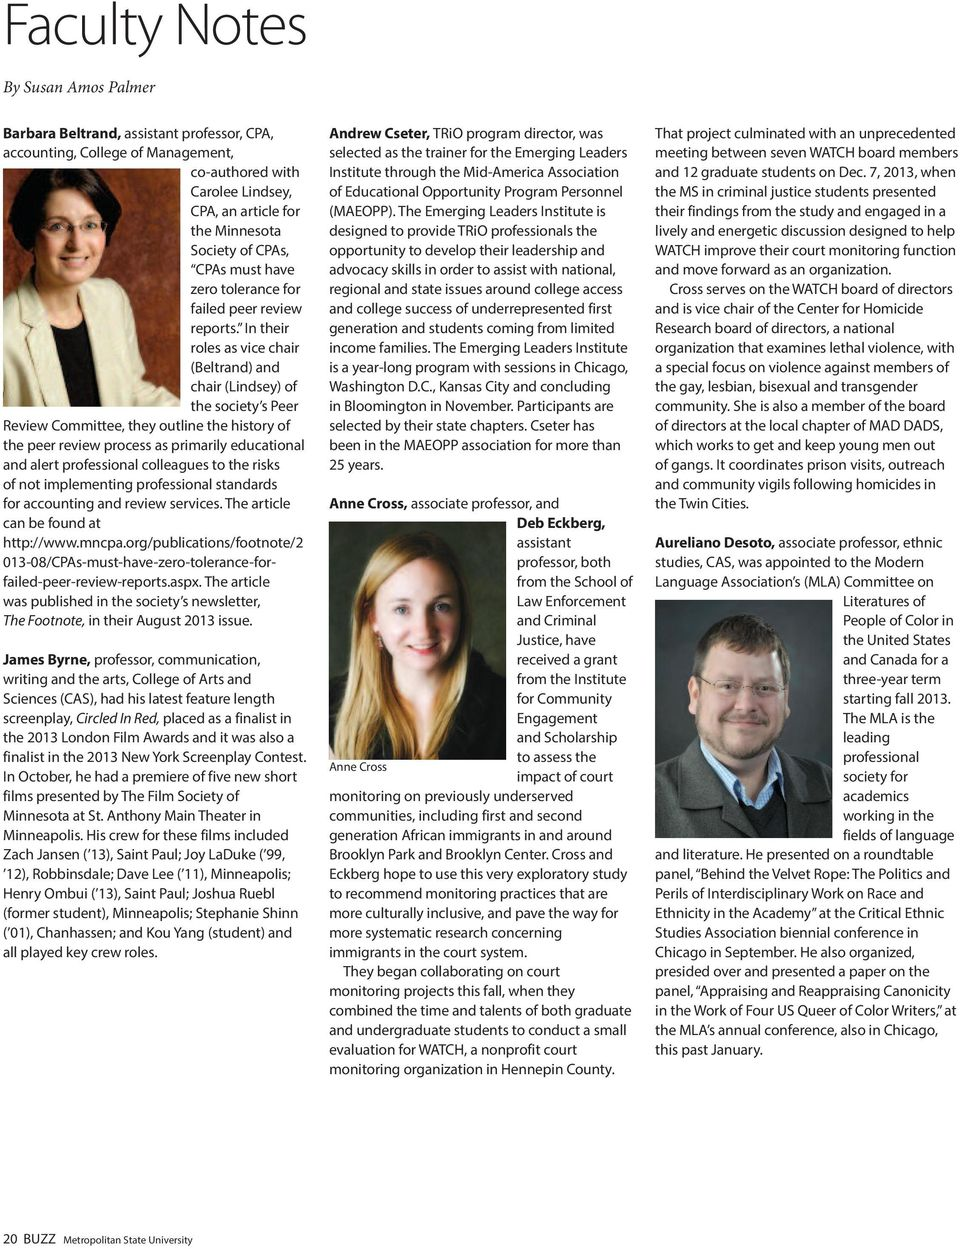 in their roles as vice chair (Beltrand) and chair (lindsey) of the society s peer review Committee, they outline the history of the peer review process as primarily educational and alert professional